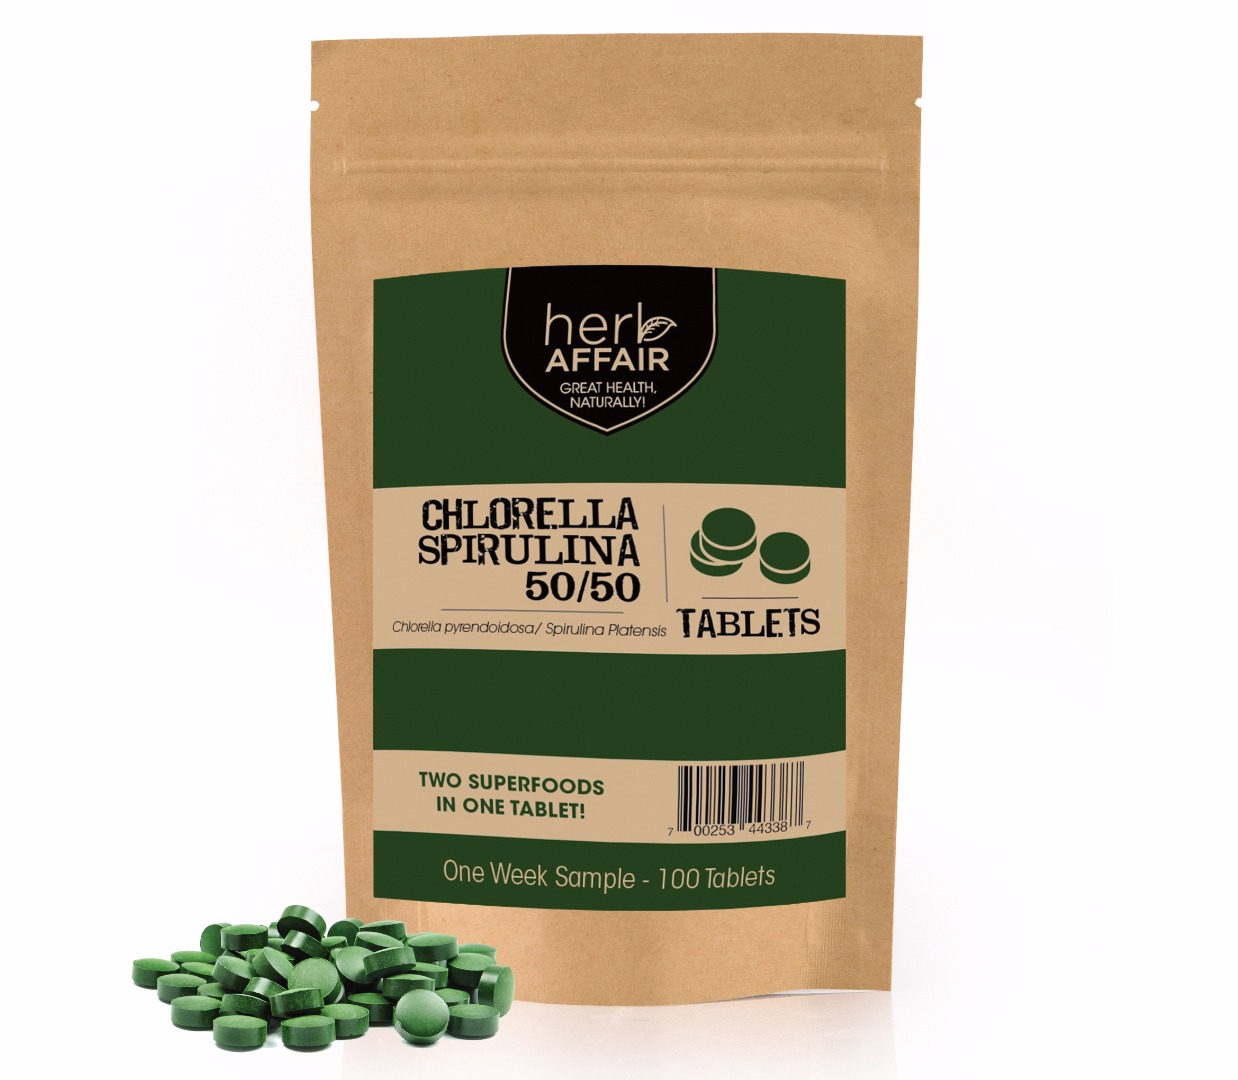 chlorella spirulina 50/50 tablets with pile of tablets in front